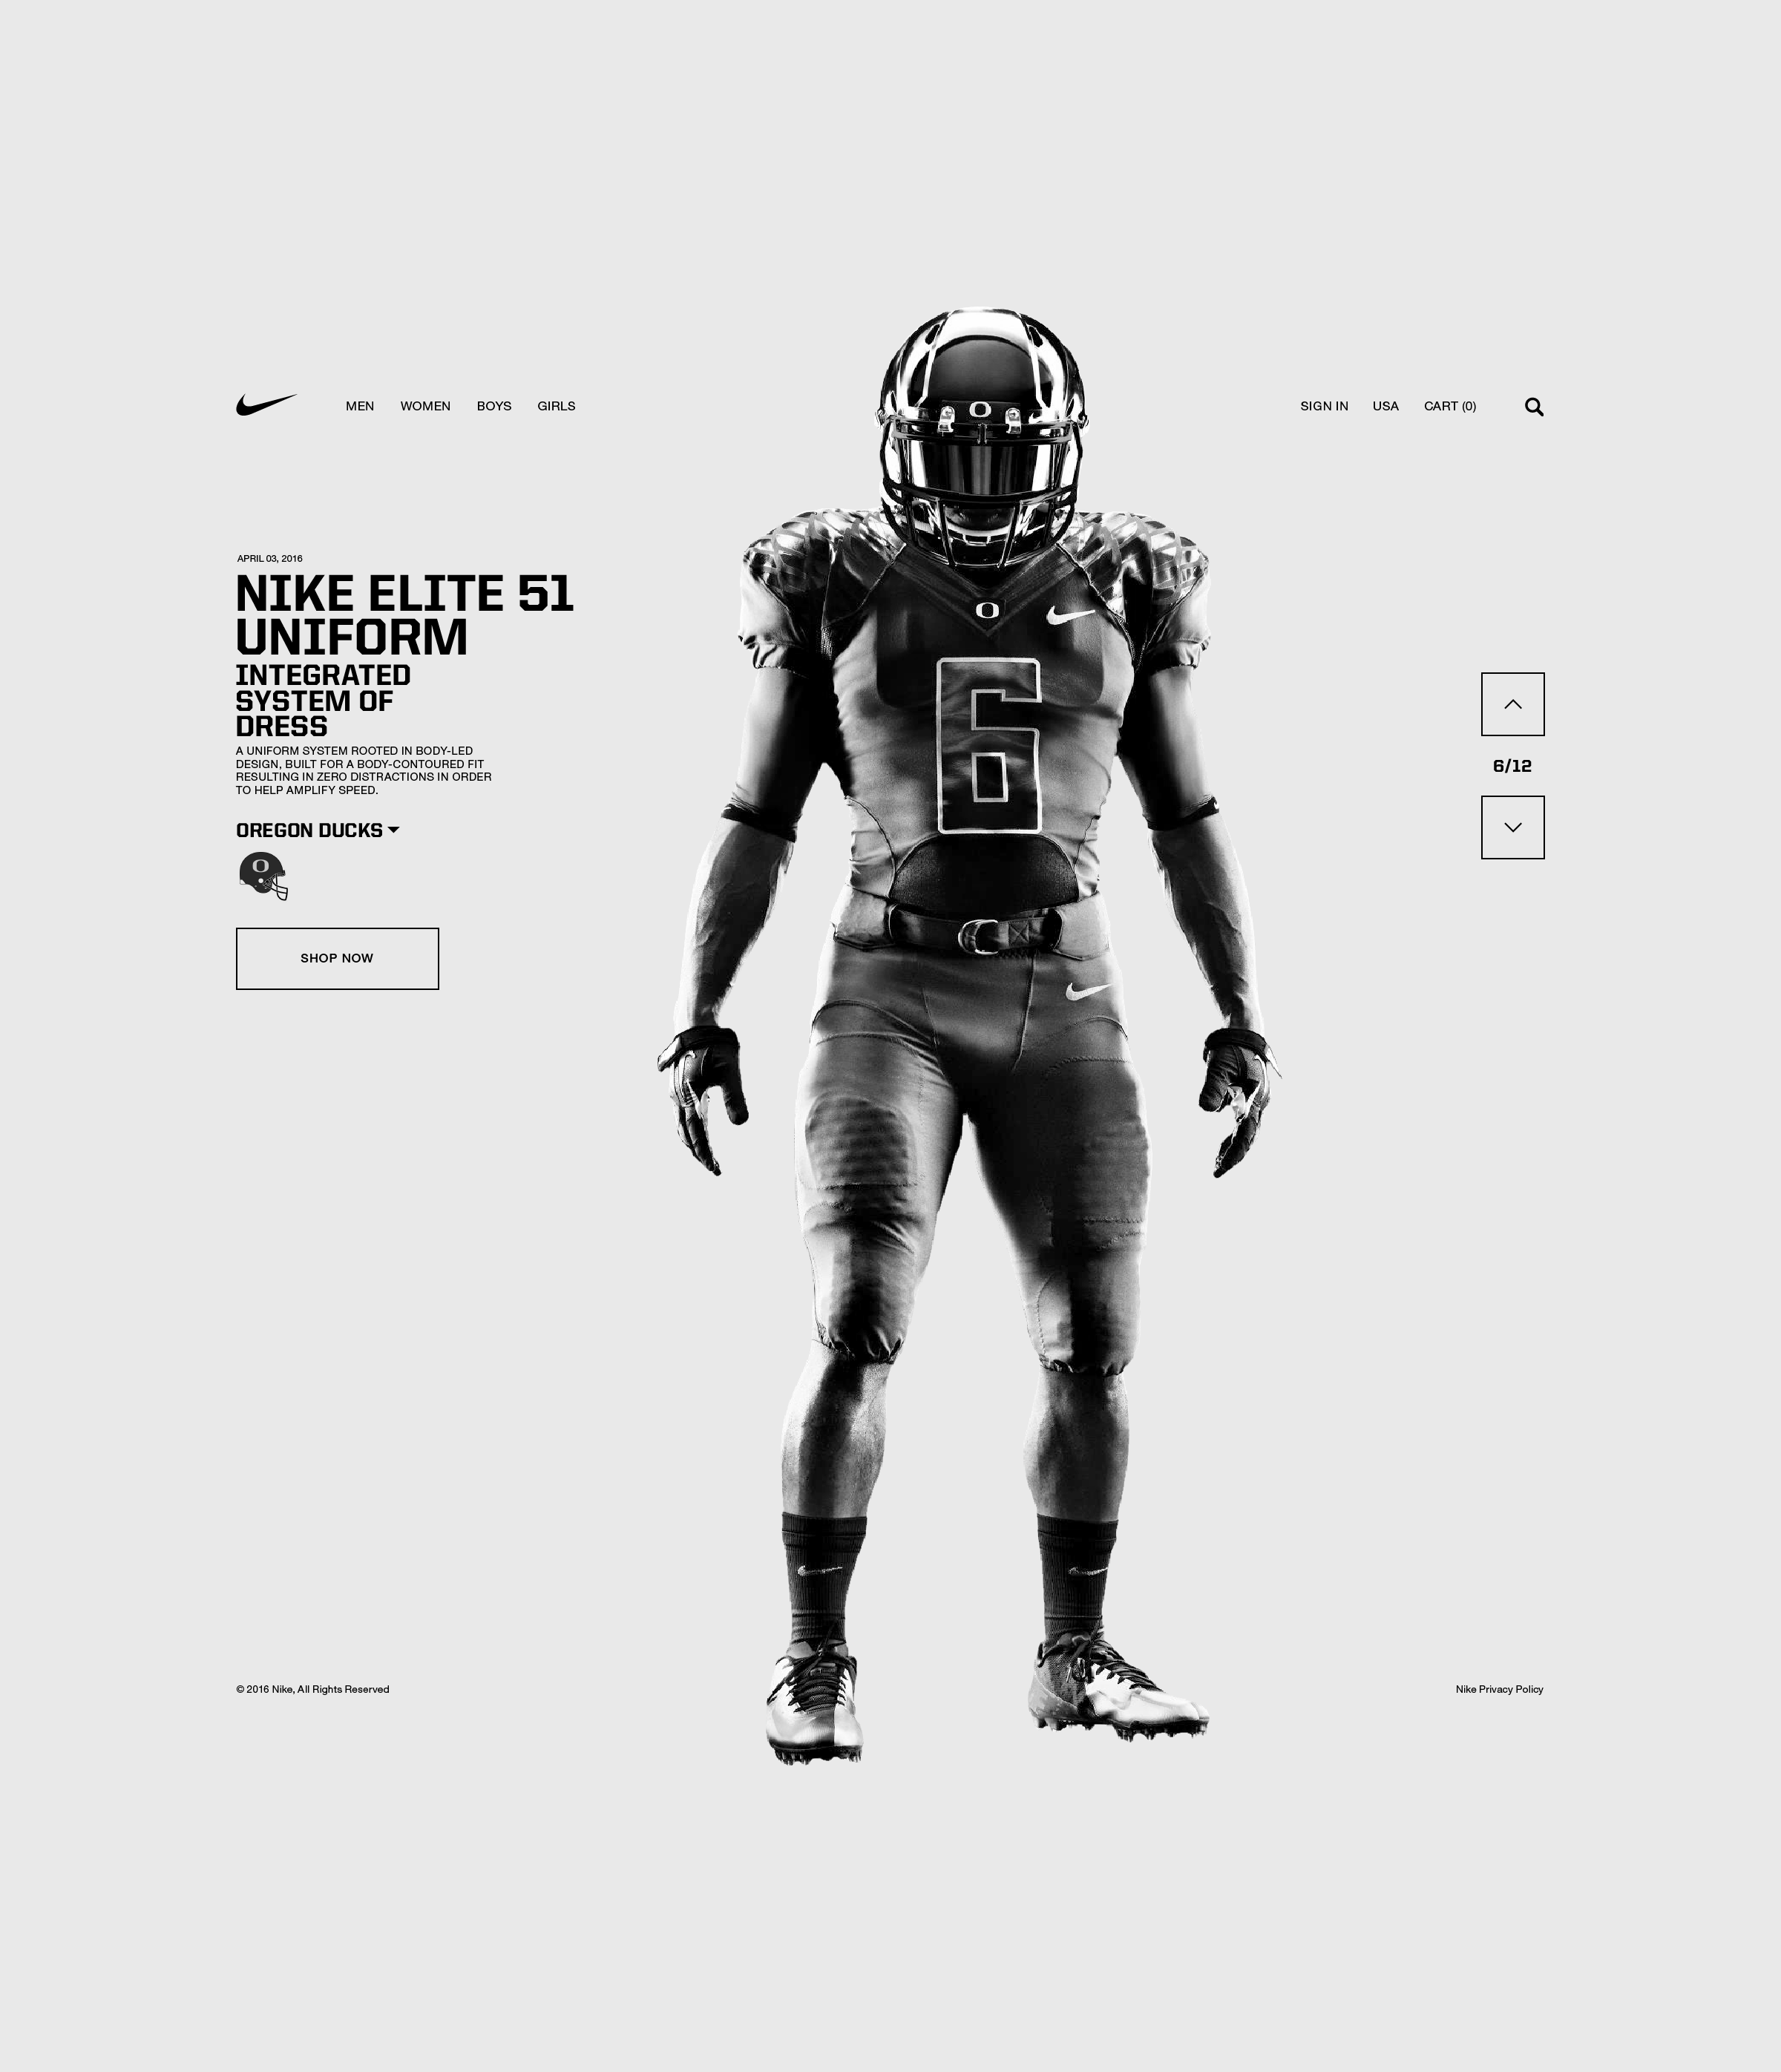 Nike Elite 51 Uniform I M Not Nike S Biggest Fan But This Was A Nice Design Sports Graphic Design Graphic Design Logo Fitness Design